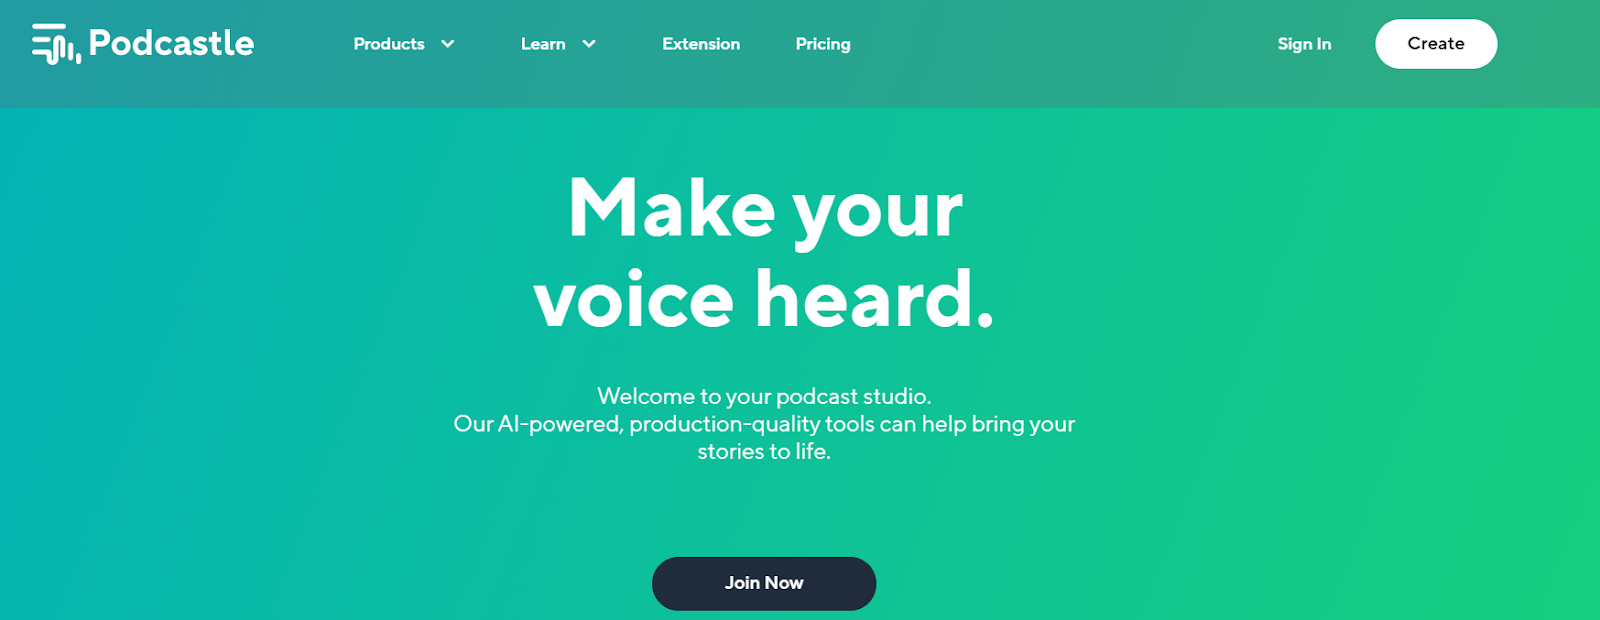 Podcastle home page